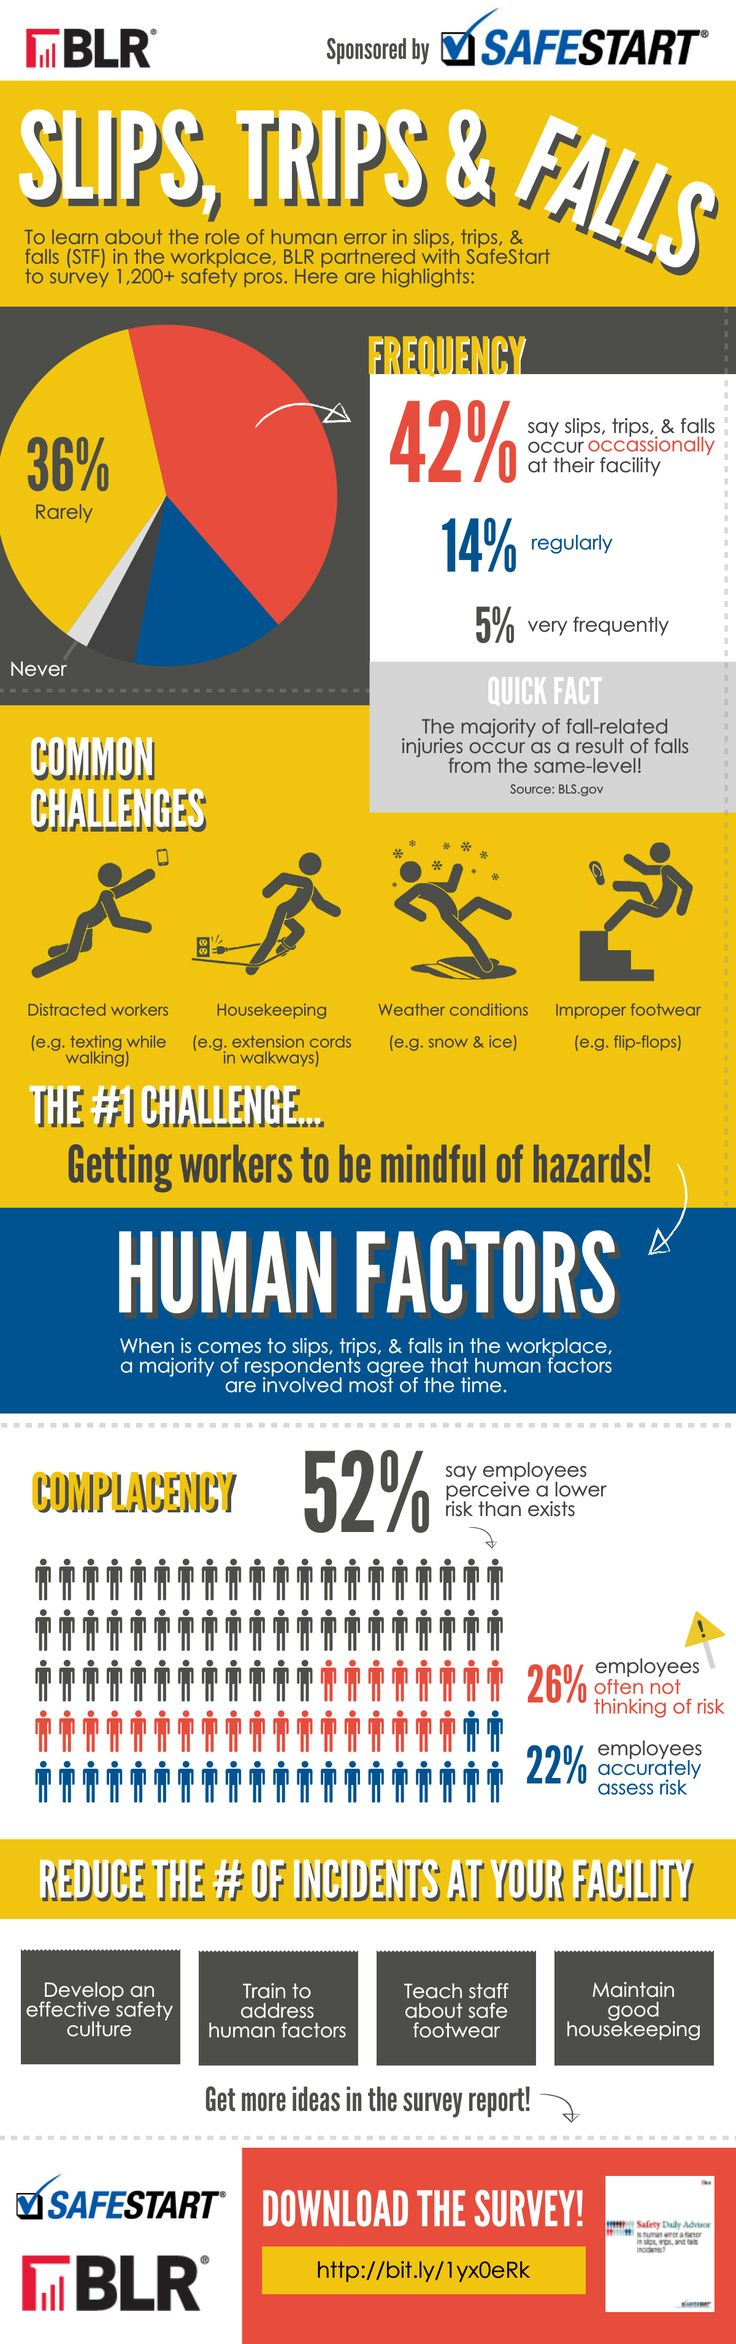 Safety and the Human Factor Infographic